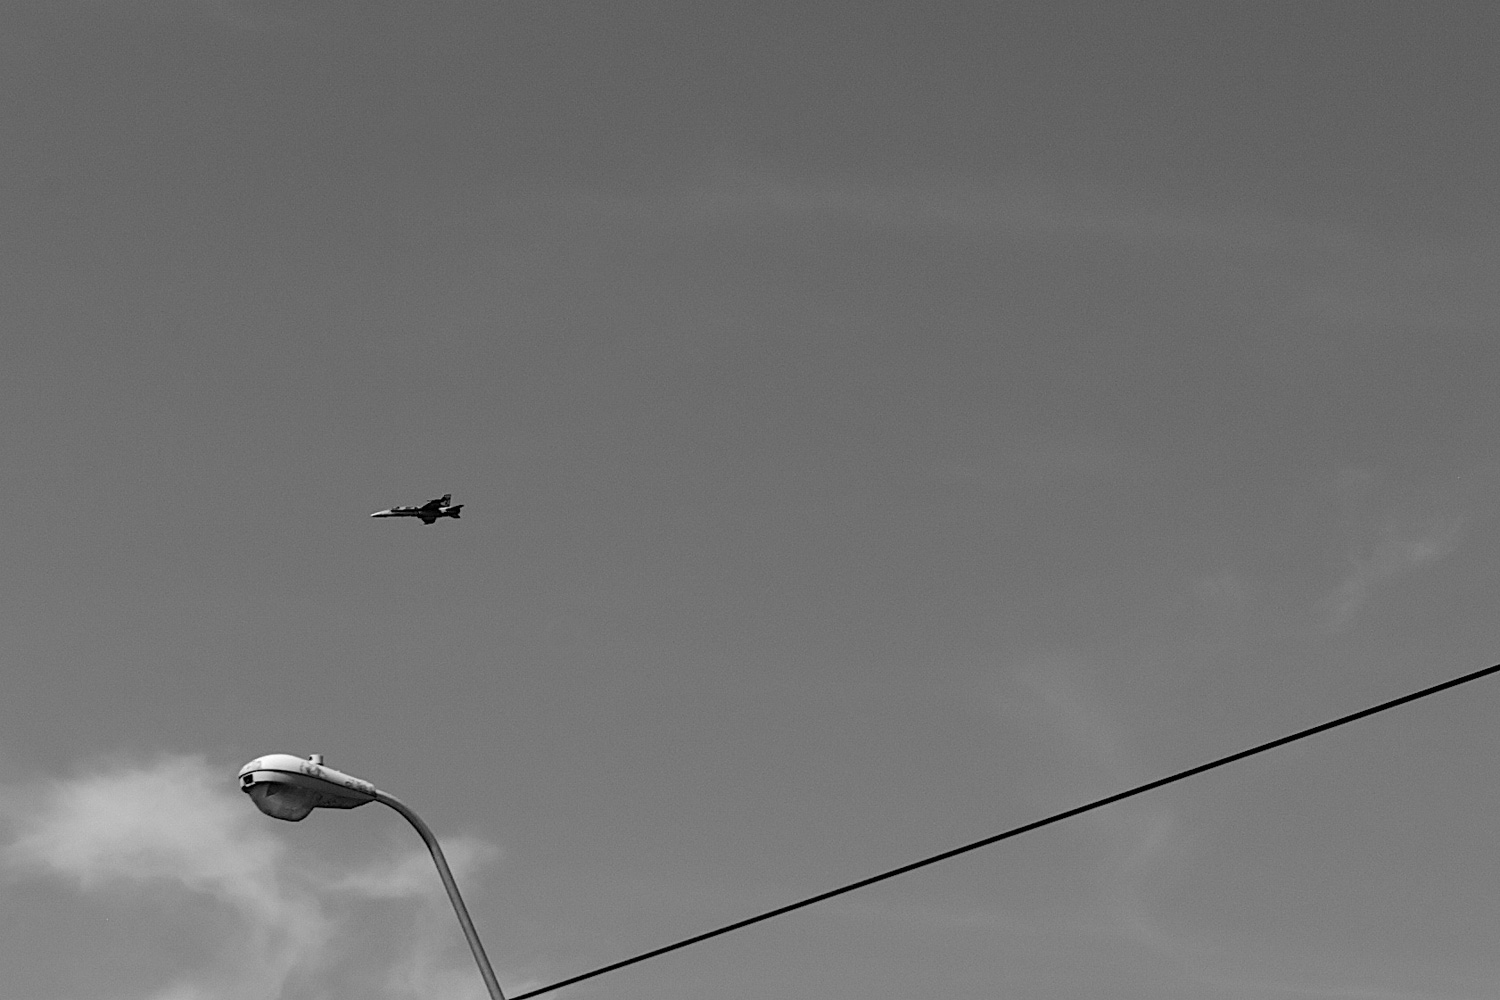 fly in the sky (birds and a wire)